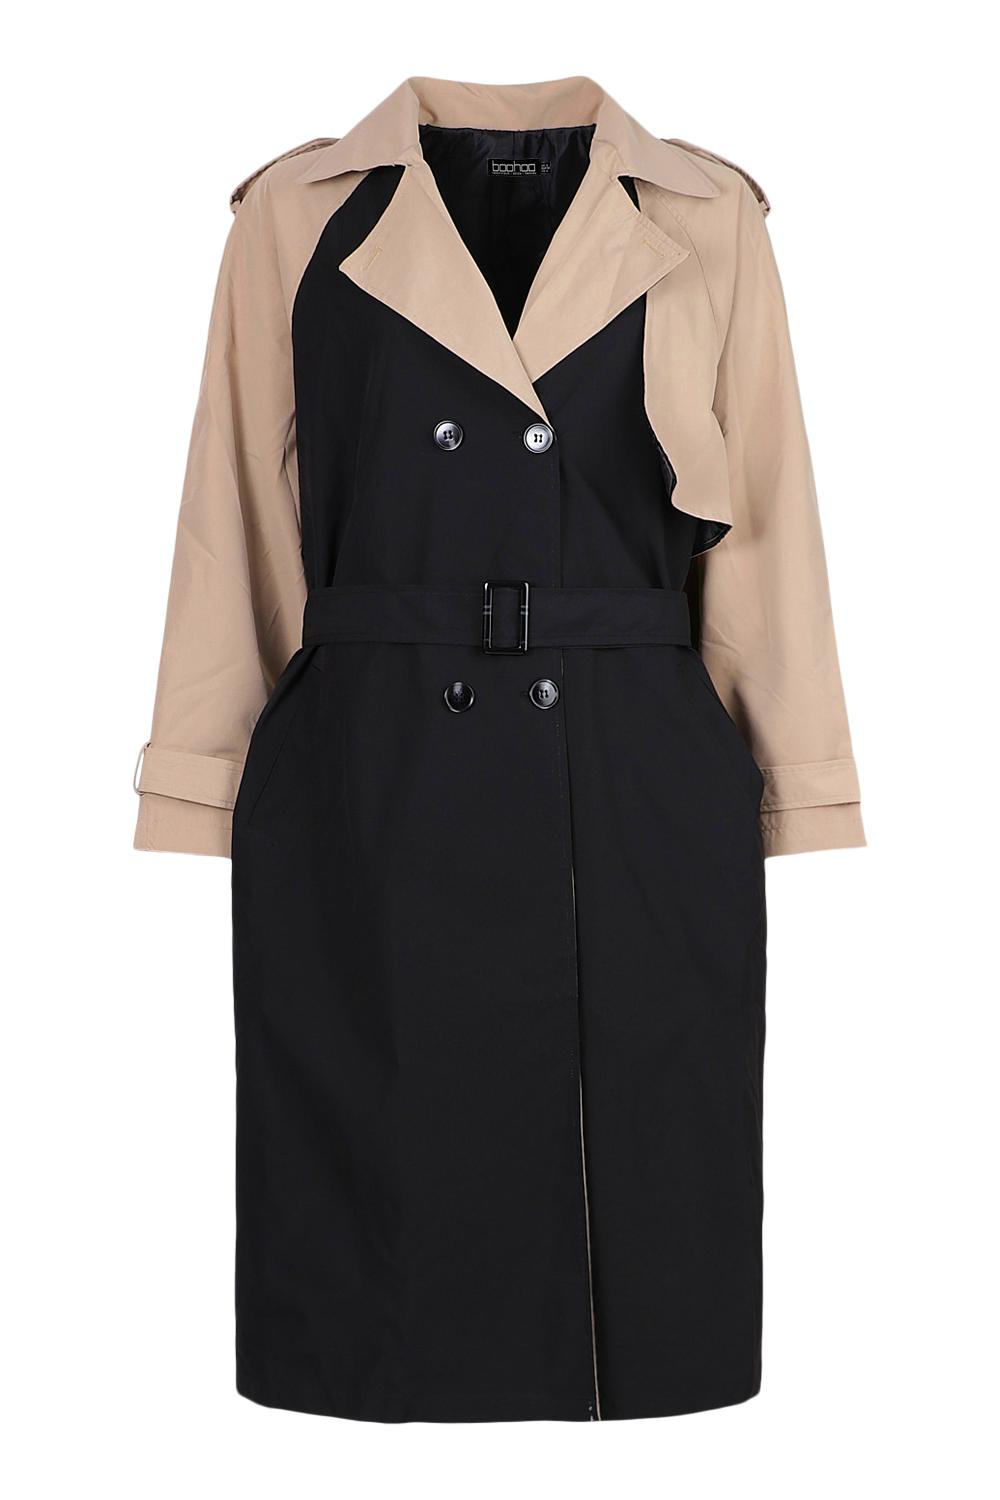 Vintage Coats & Jackets | Retro Coats and Jackets Womens Contrast Colour Belted Trench Coat - Black - 12 $28.00 AT vintagedancer.com